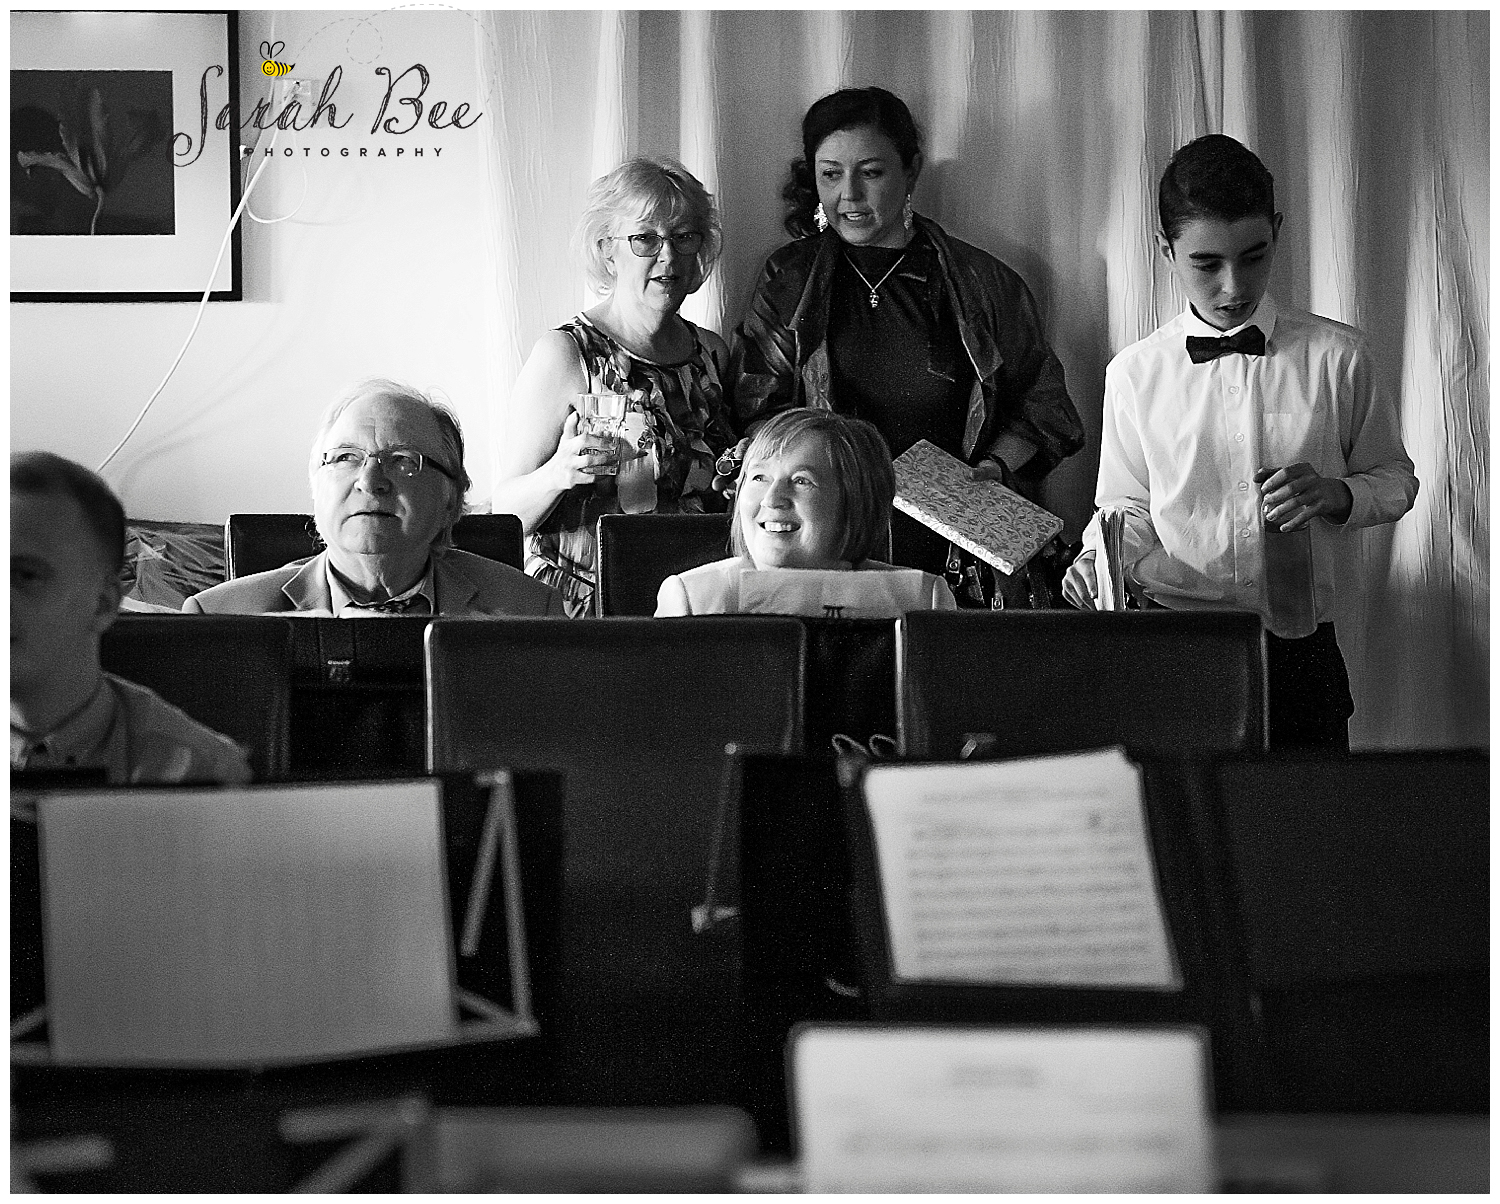 wedding photography with sarah bee photography, Peruga woodheys glossop, documentory photography wedding photographer_0205.jpg